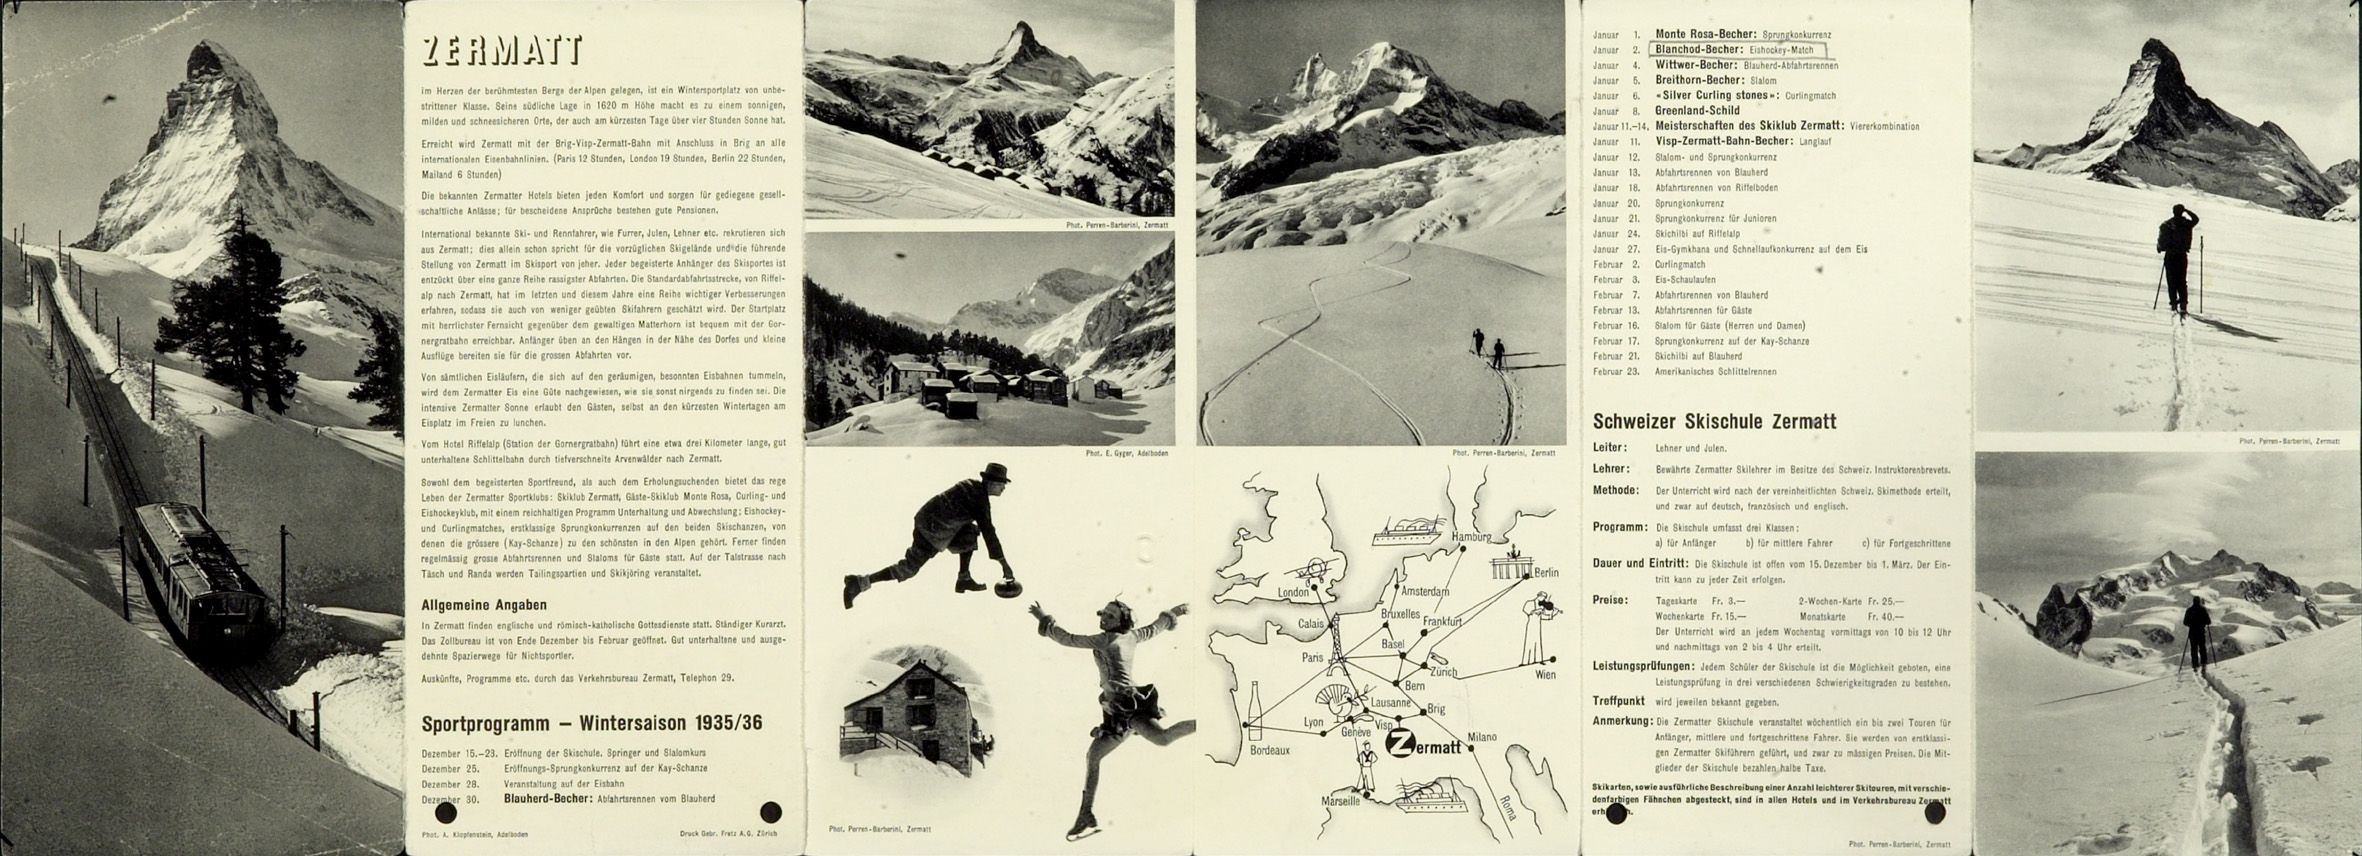 The winter season flyers in the 1930s